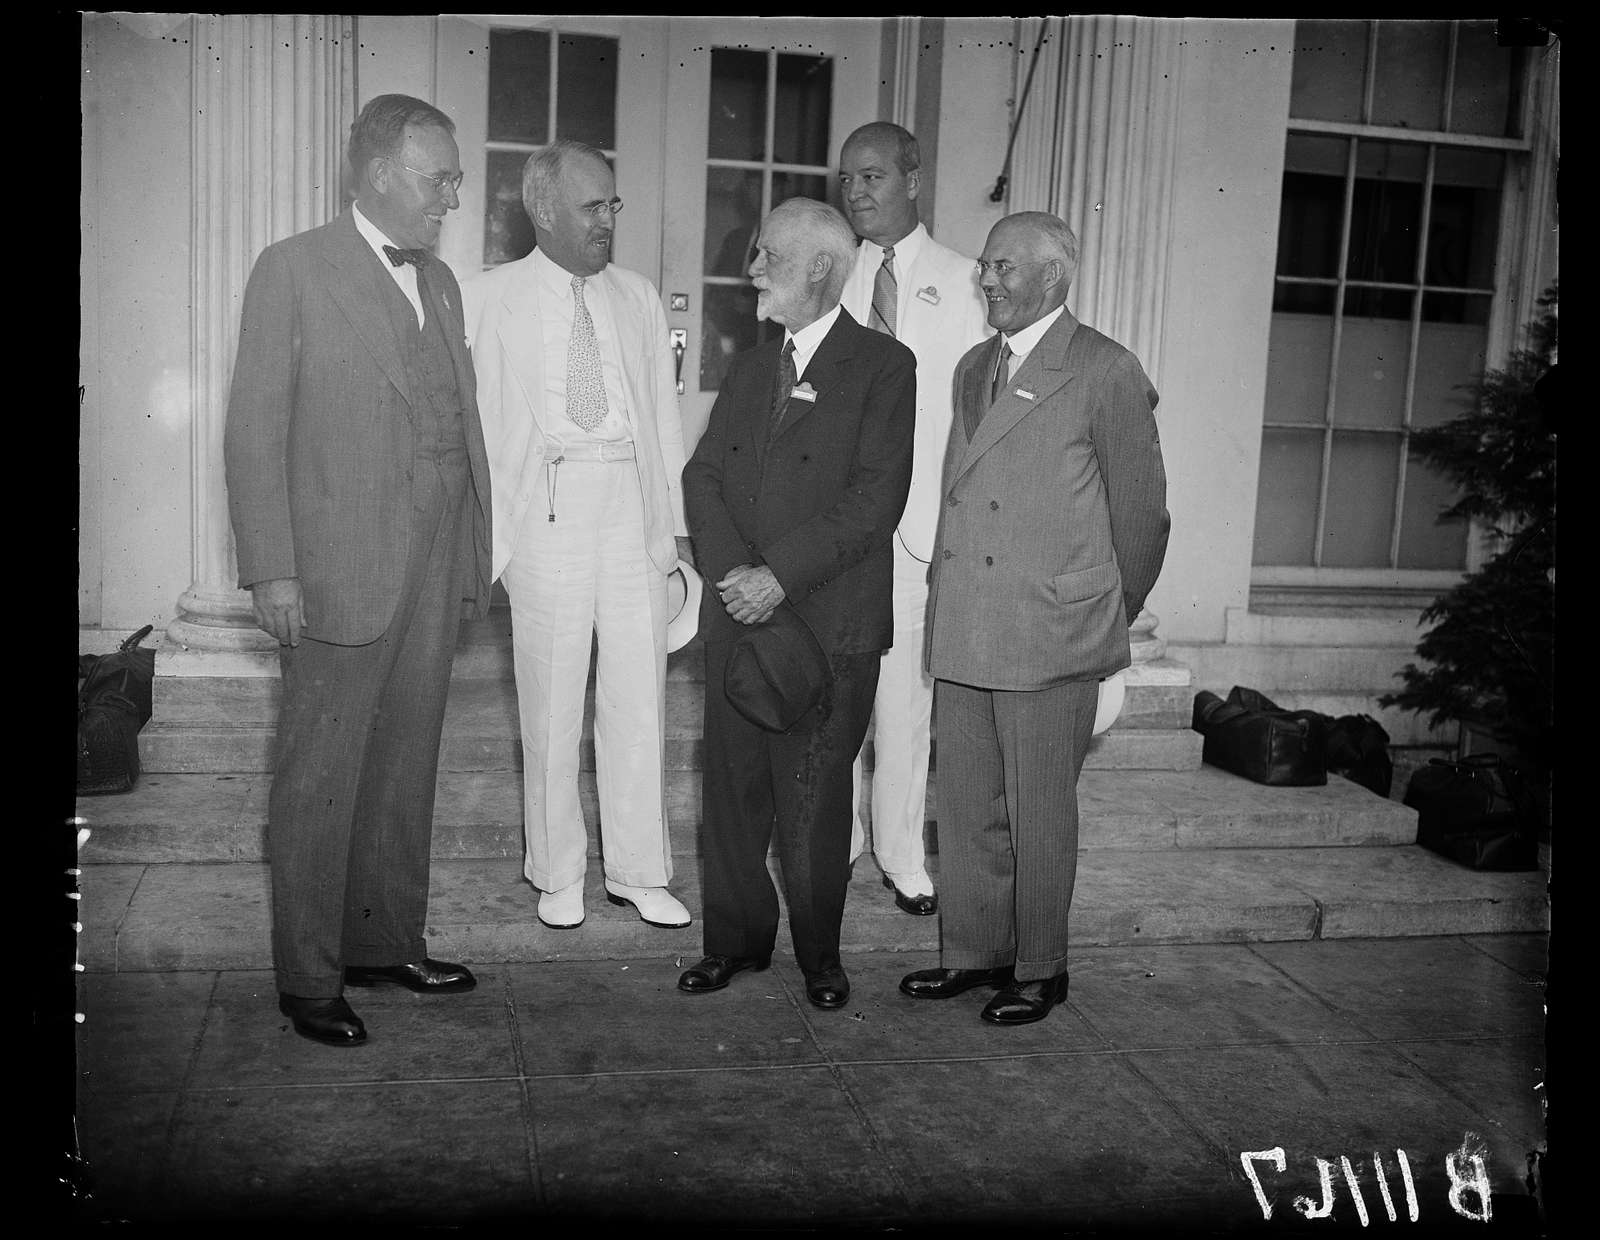 World power conferees visit Roosevelt, Washington, D.C., September 11. A group of delegates of the World Power Conference photographed outside the White House after they had paid a visit to President Roosevelt. From the left: F. L. Carlisle, Chairman of the Board of Consolidated Edison Co., of N.Y.; Morris L. Cooke, chief of the R.E.A.; W.F. Durand, Acting Chairman of the Conferences; Sir Harold Hartley, Chairman of the British Delegation; and in back; C.E. Stephens, Vice-President of the Westinghouse Co